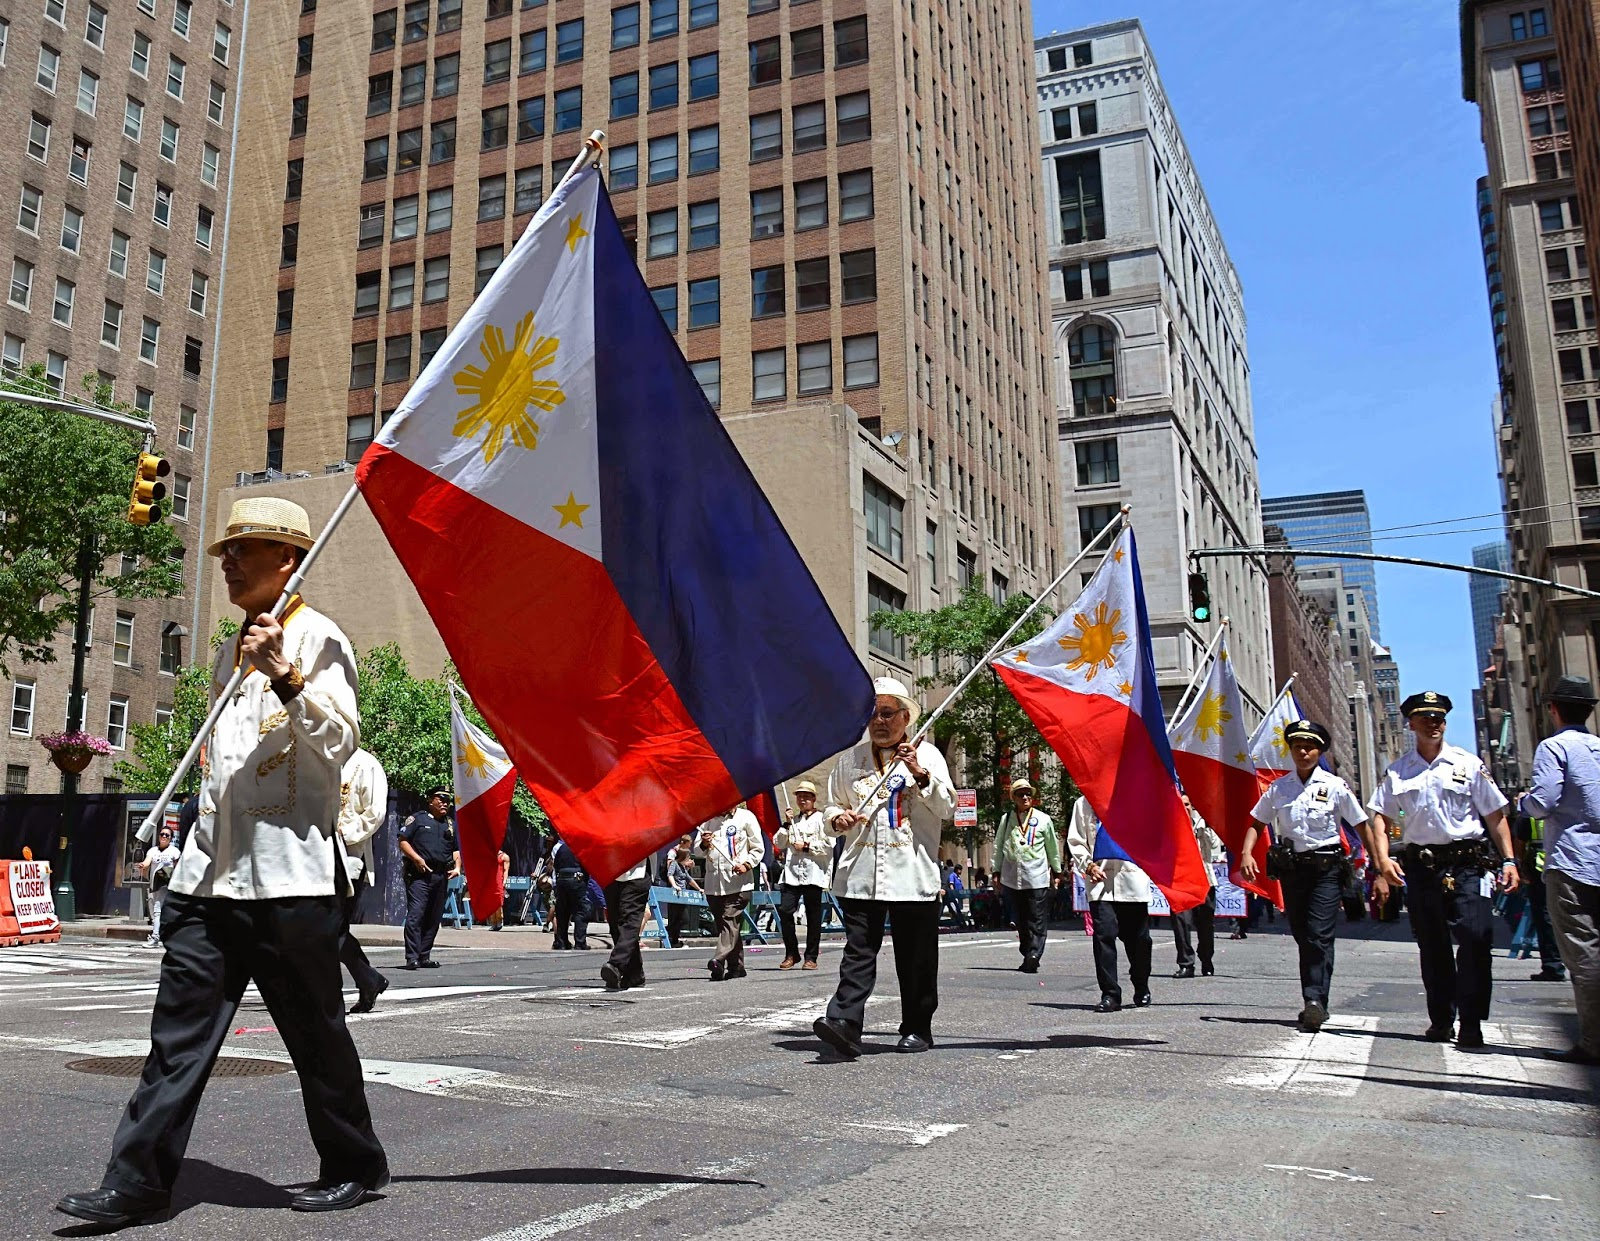 Philippines Independence Day Stock Photos. Royalty Free Philippine independence day pictures